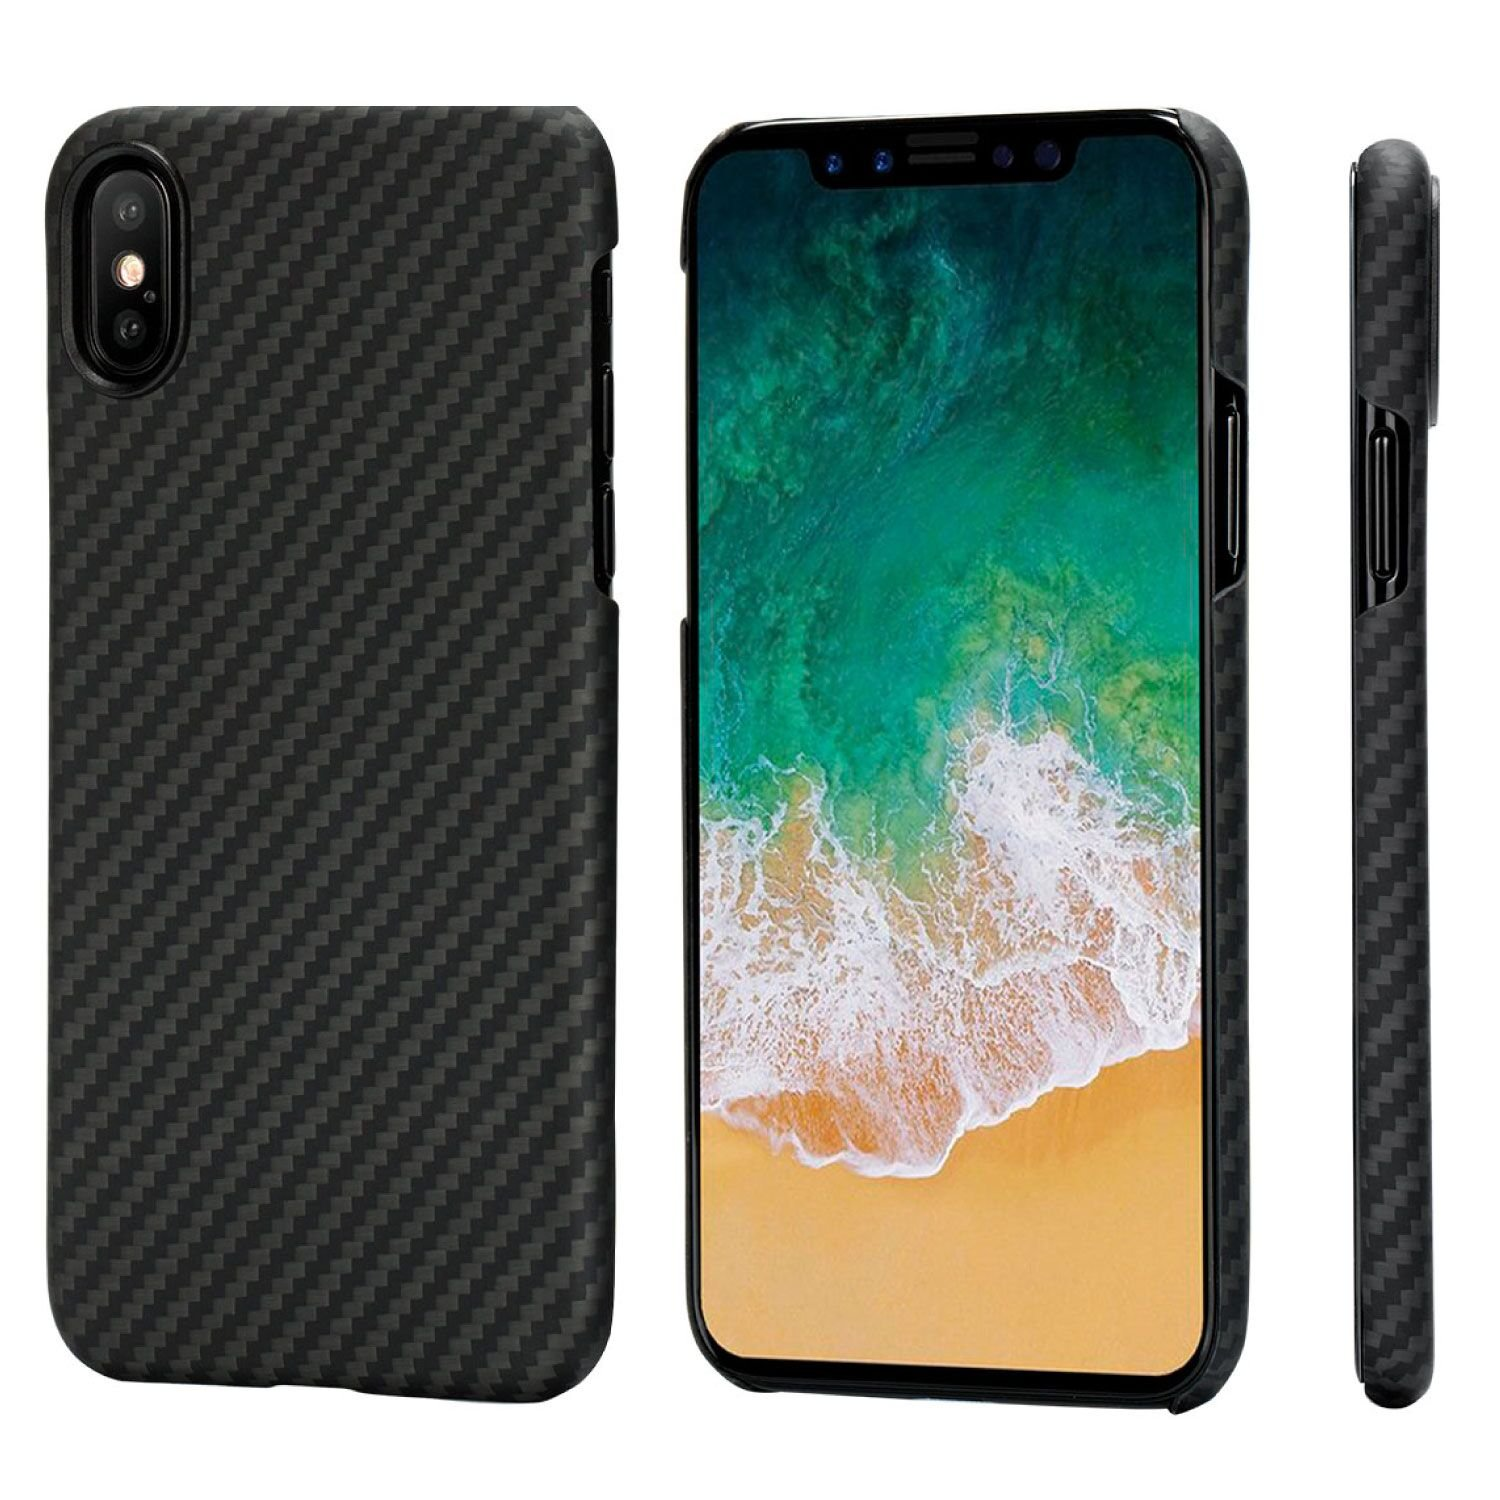 PITAKA Slim Case Compatible with iPhone X 5.8'', MagCase Aramid Fiber [Real Body Armor Material] Phone Case,Minimalist Strongest Durable Snugly Fit Snap-on Case - Black/Grey(Twill) by PITAKA